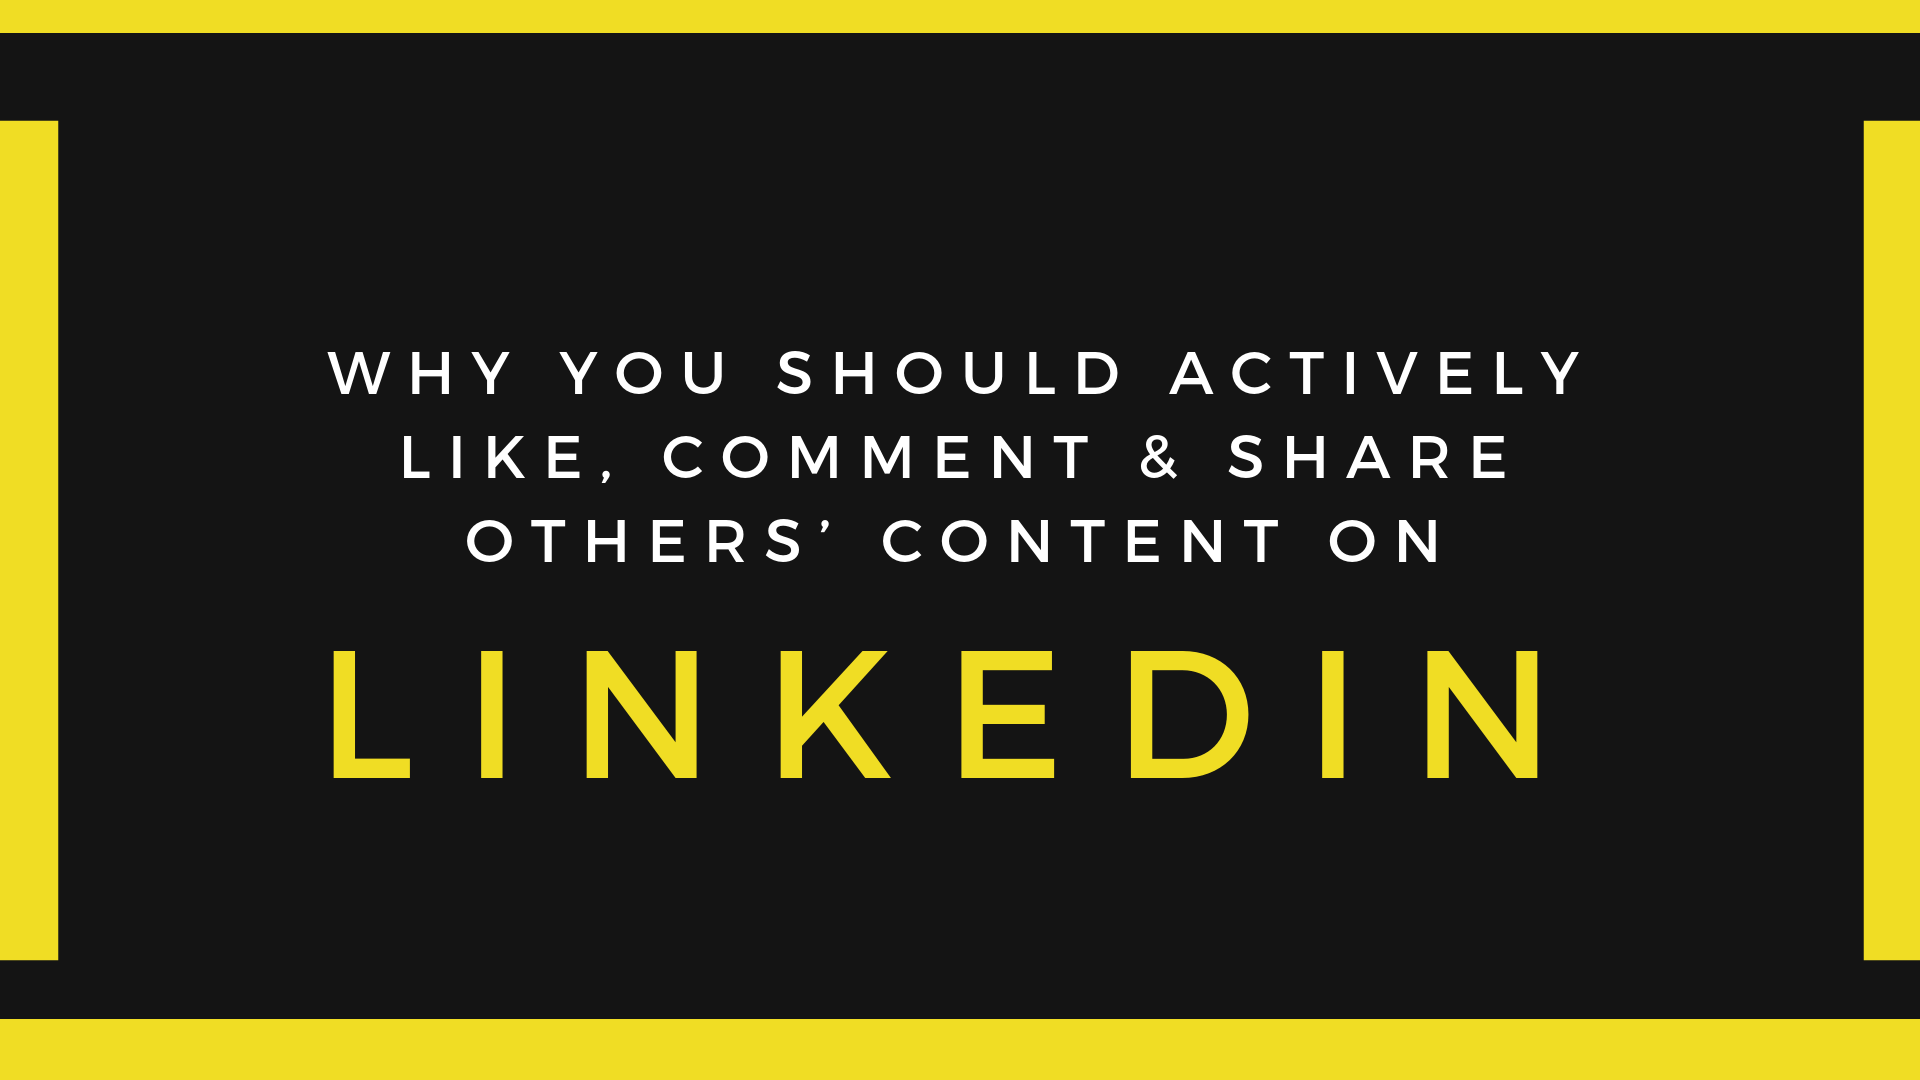 Why you should actively like, comment & share others' content on LinkedIn